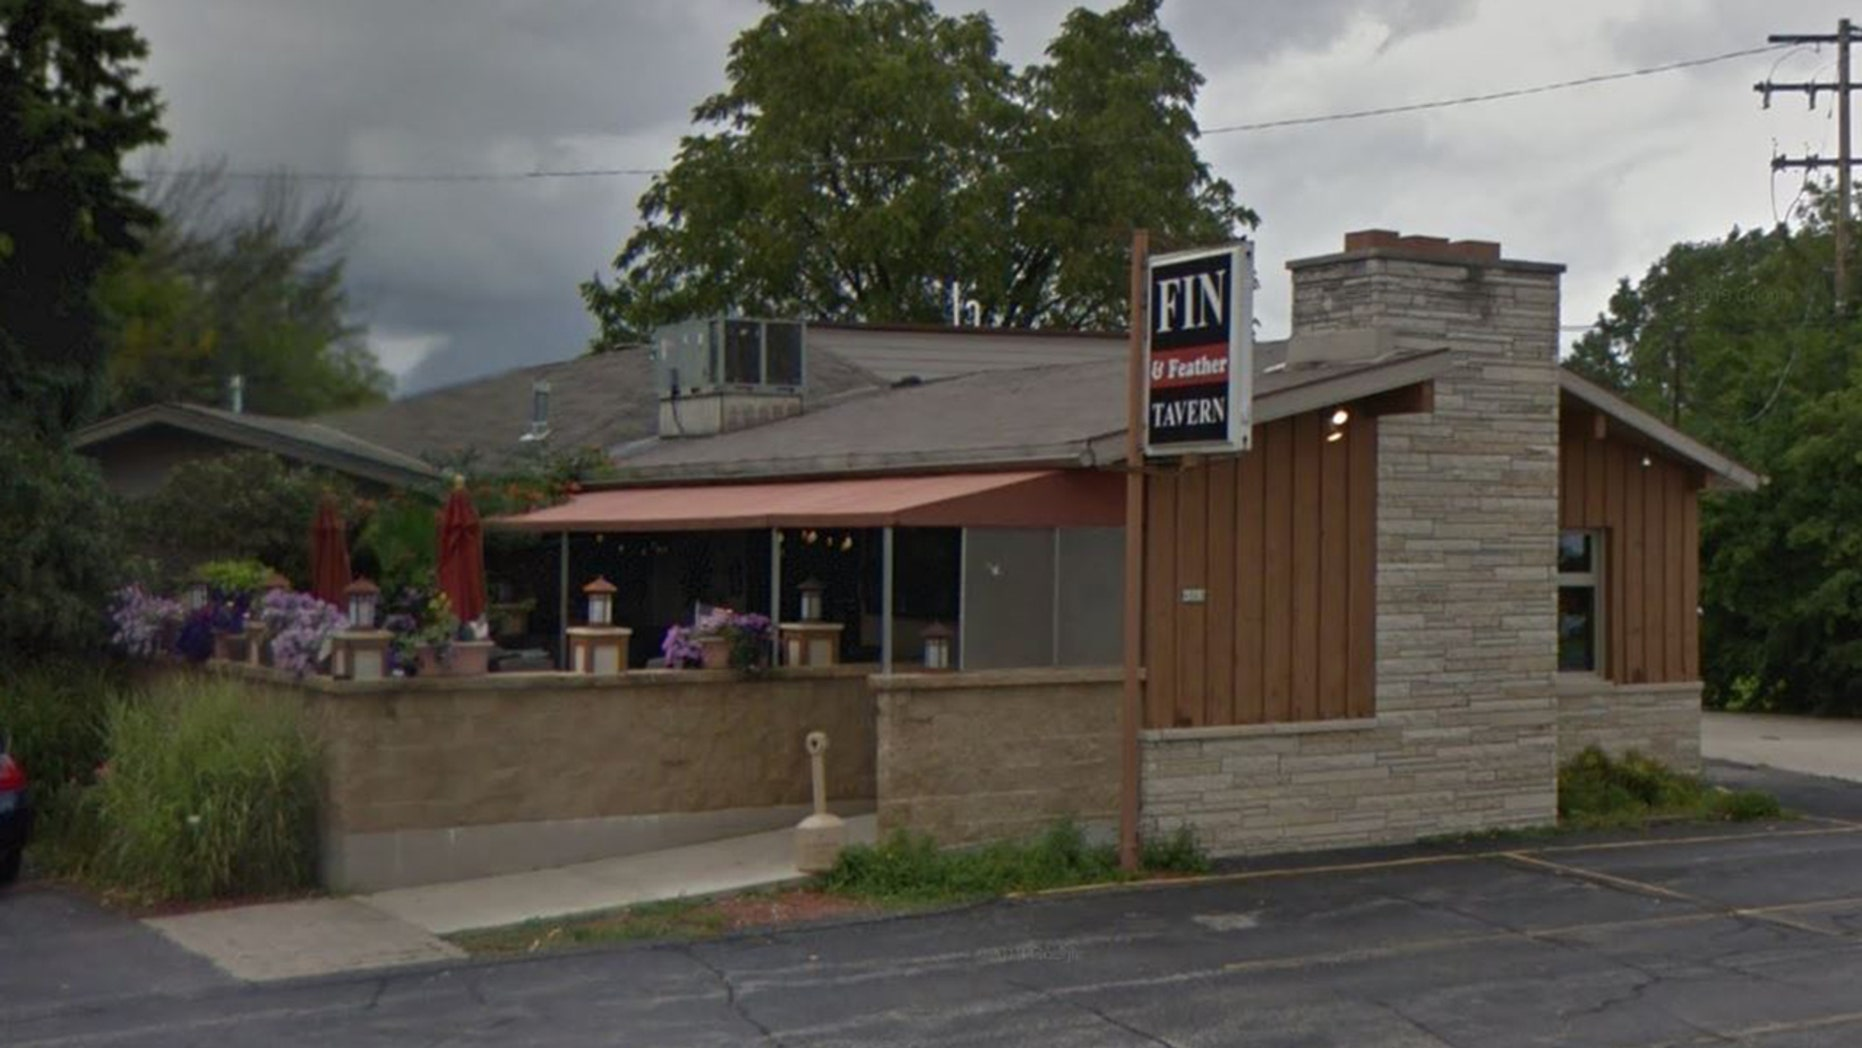 According to police, the suspect had been disruptive inside the Fin n' Feather before he tried to bring his dog inside